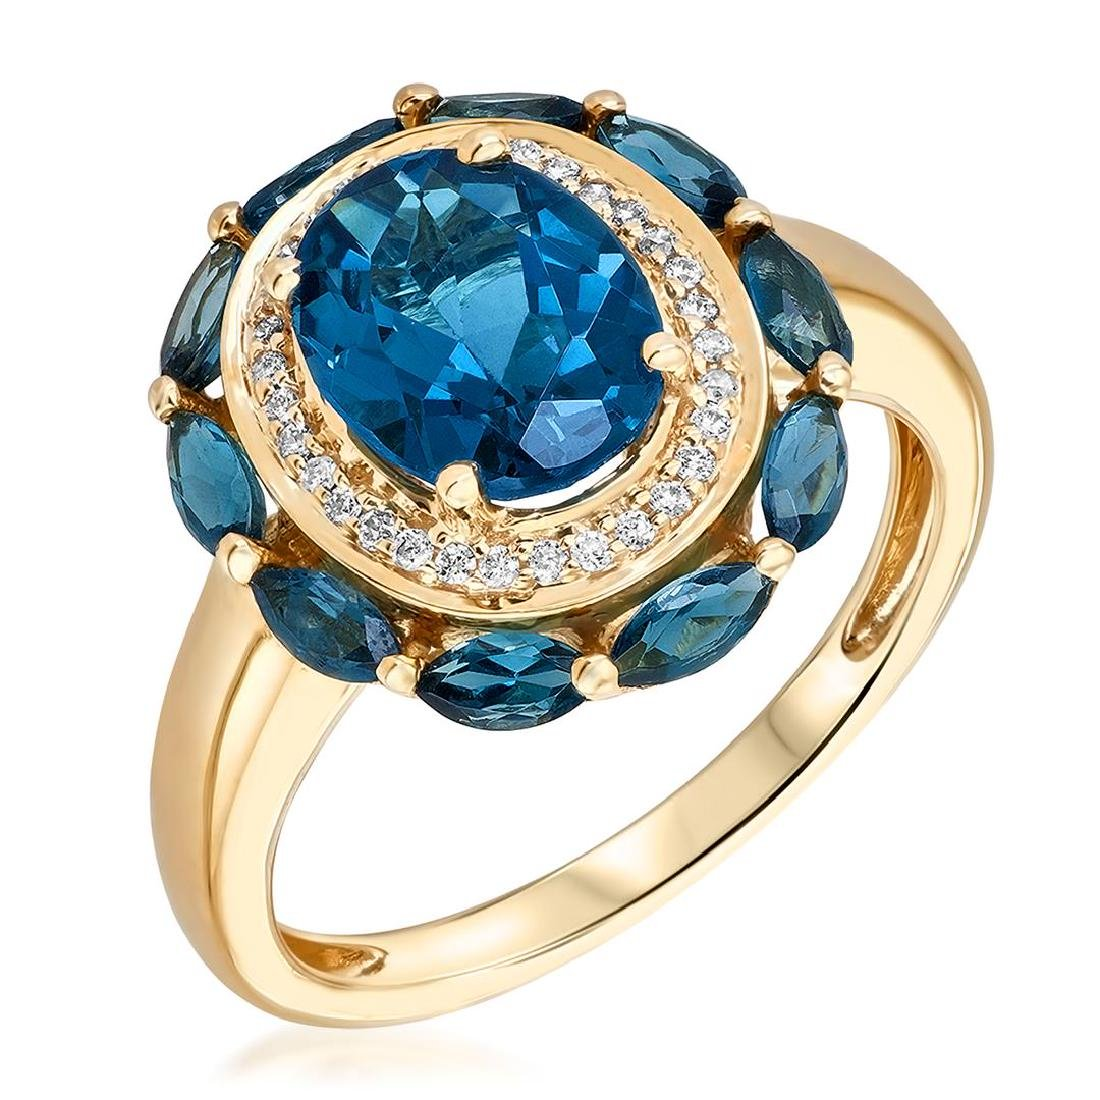 3.15 ctw Topaz and Diamond Ring - 10KT Yellow Gold - 2